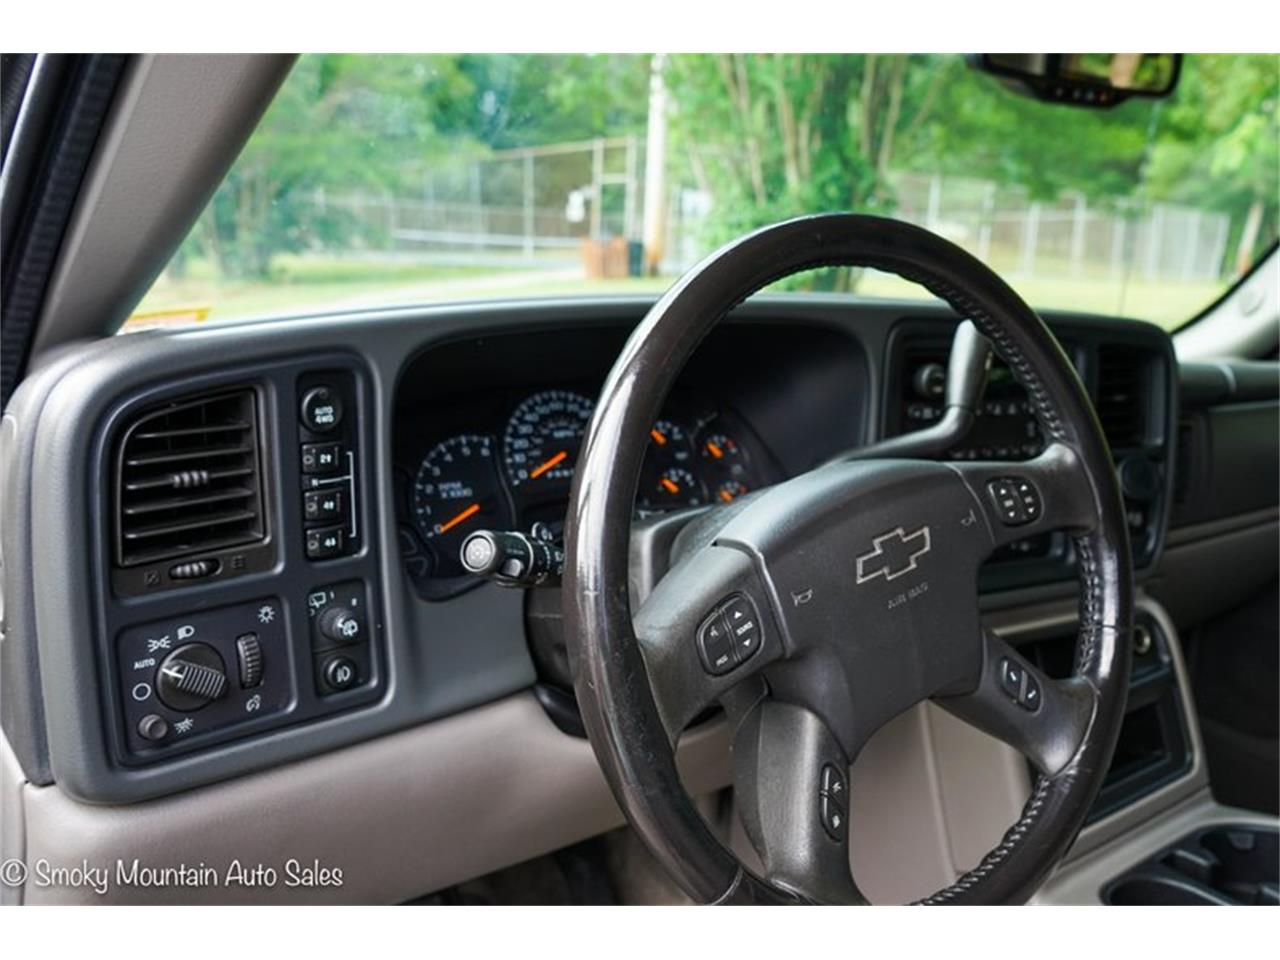 2006 Chevrolet Tahoe (CC-1359850) for sale in Lenoir City, Tennessee